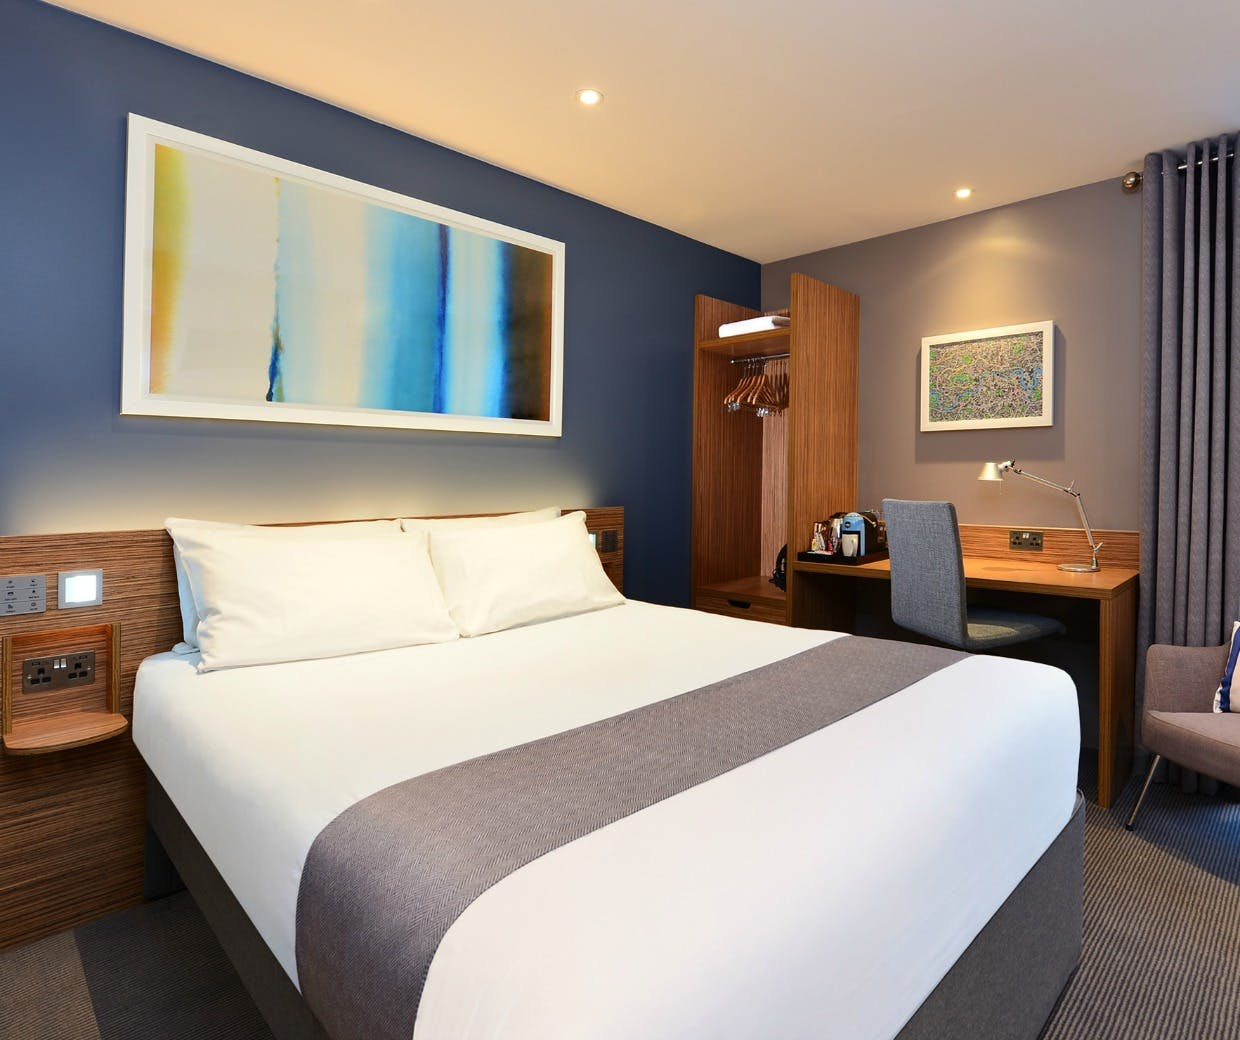 Travelodge admits price alone cannot boost loyalty as it launches travelodge admits price alone cannot boost loyalty as it launches new premium rooms colourmoves